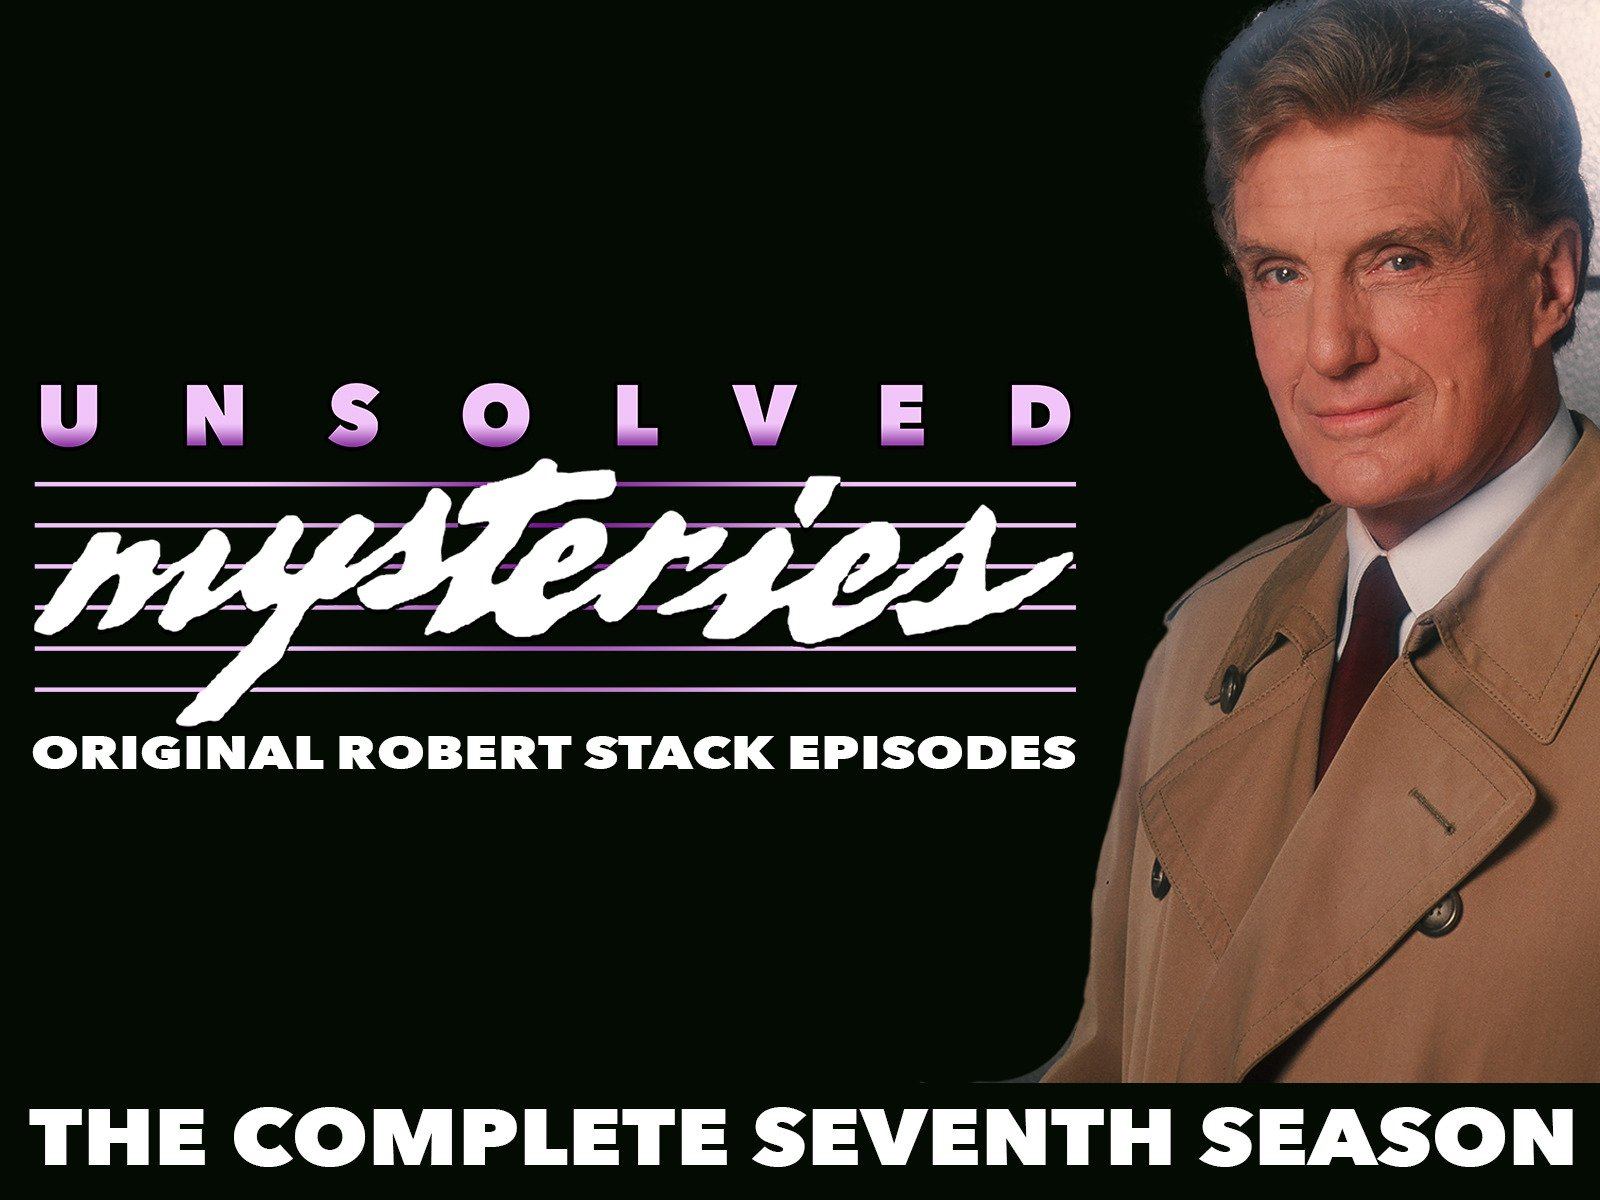 Unsolved Mysteries: Original Robert Stack Episodes - Season 7